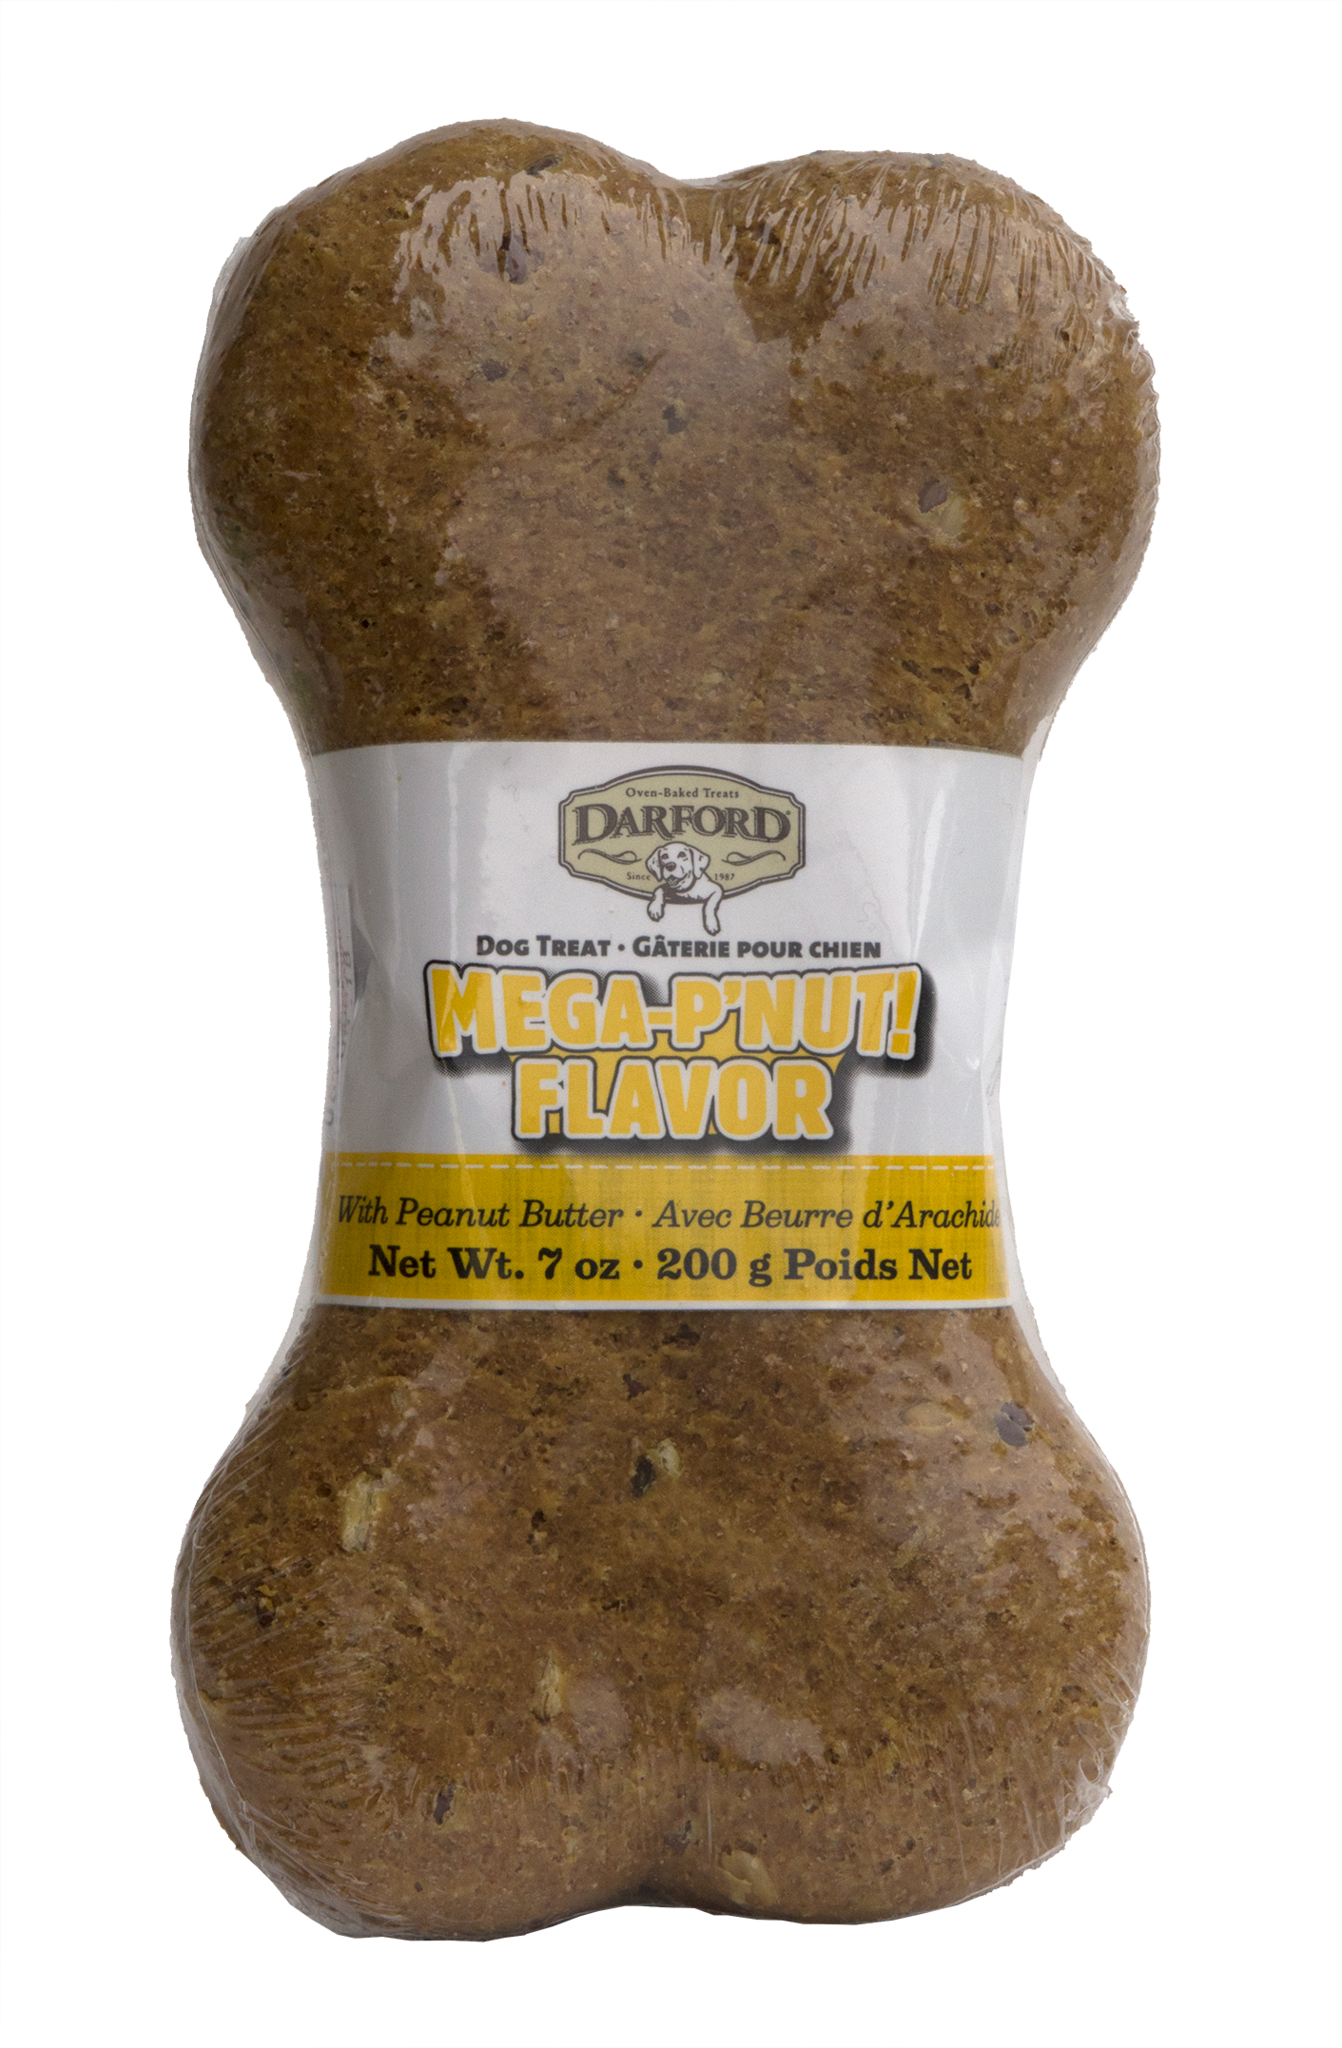 Darford Darford Mega P'nut Bone Dog Treat, 7 oz bone Product Image